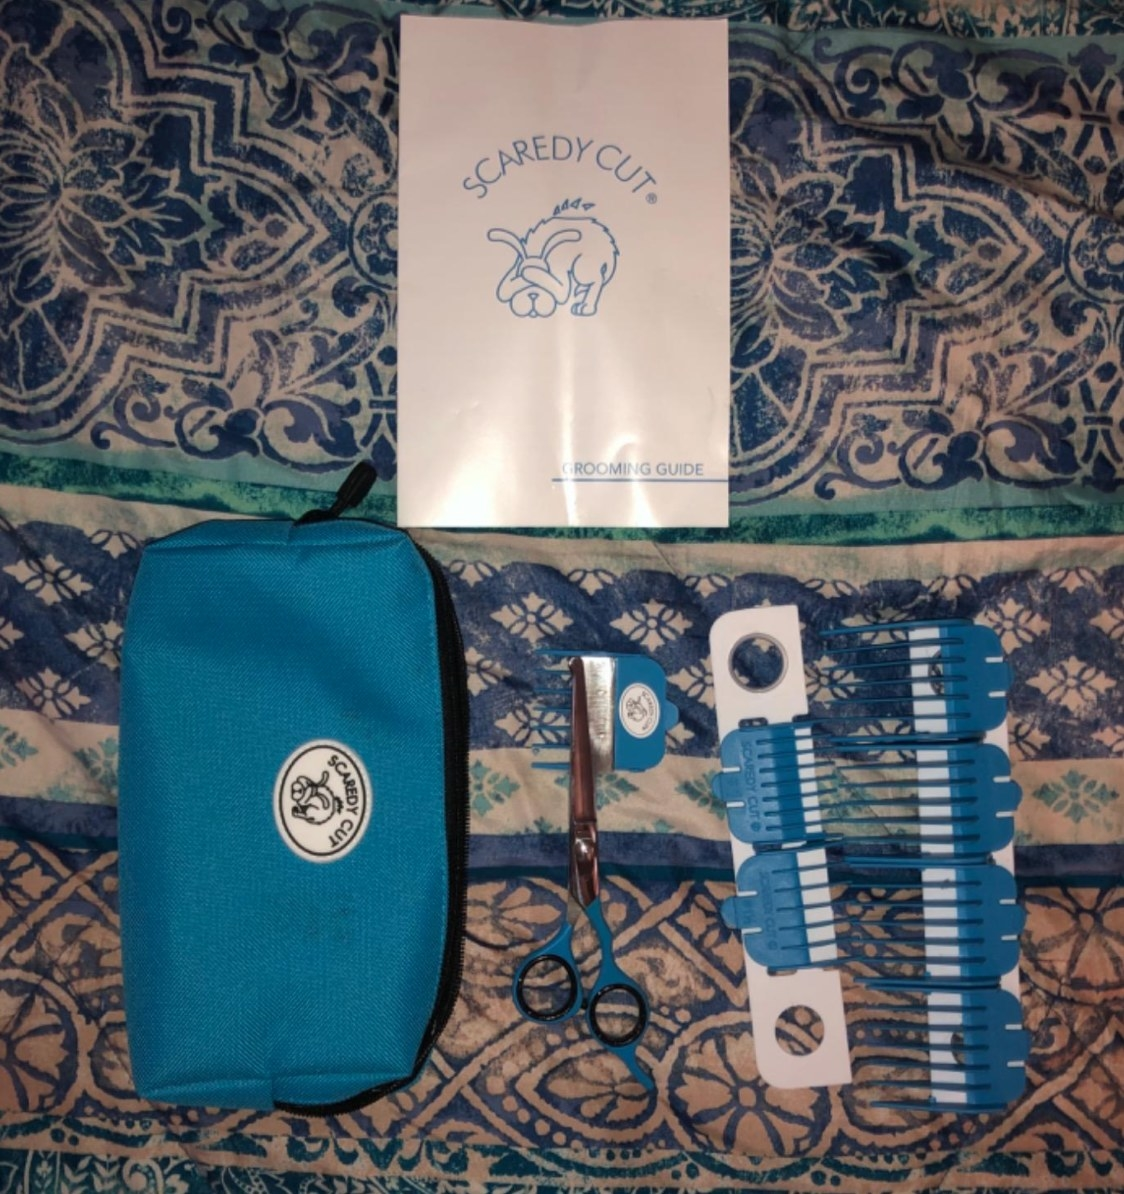 The reviewer's image of the pet grooming kit in blue